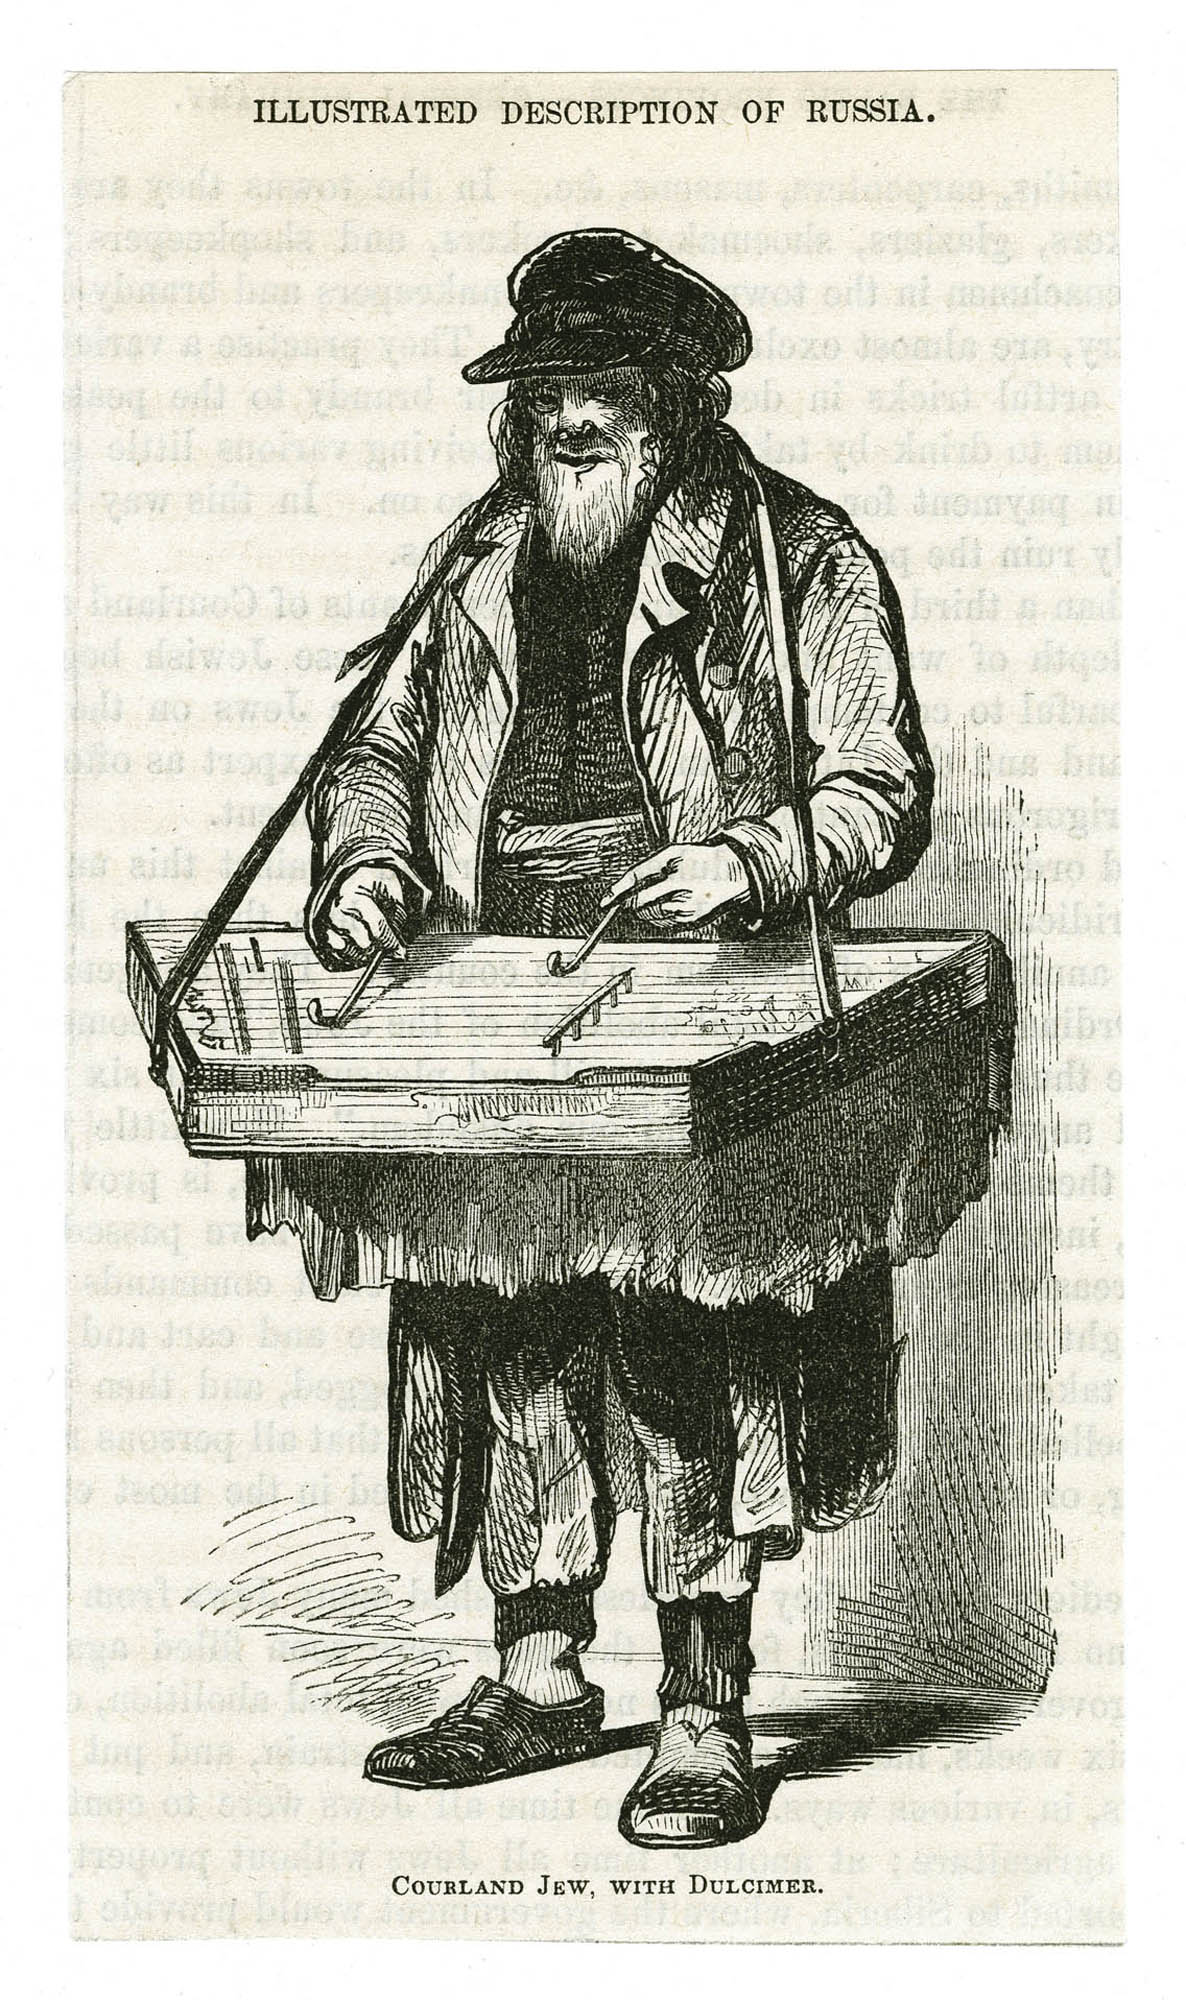 Courland Jew, with dulcimer